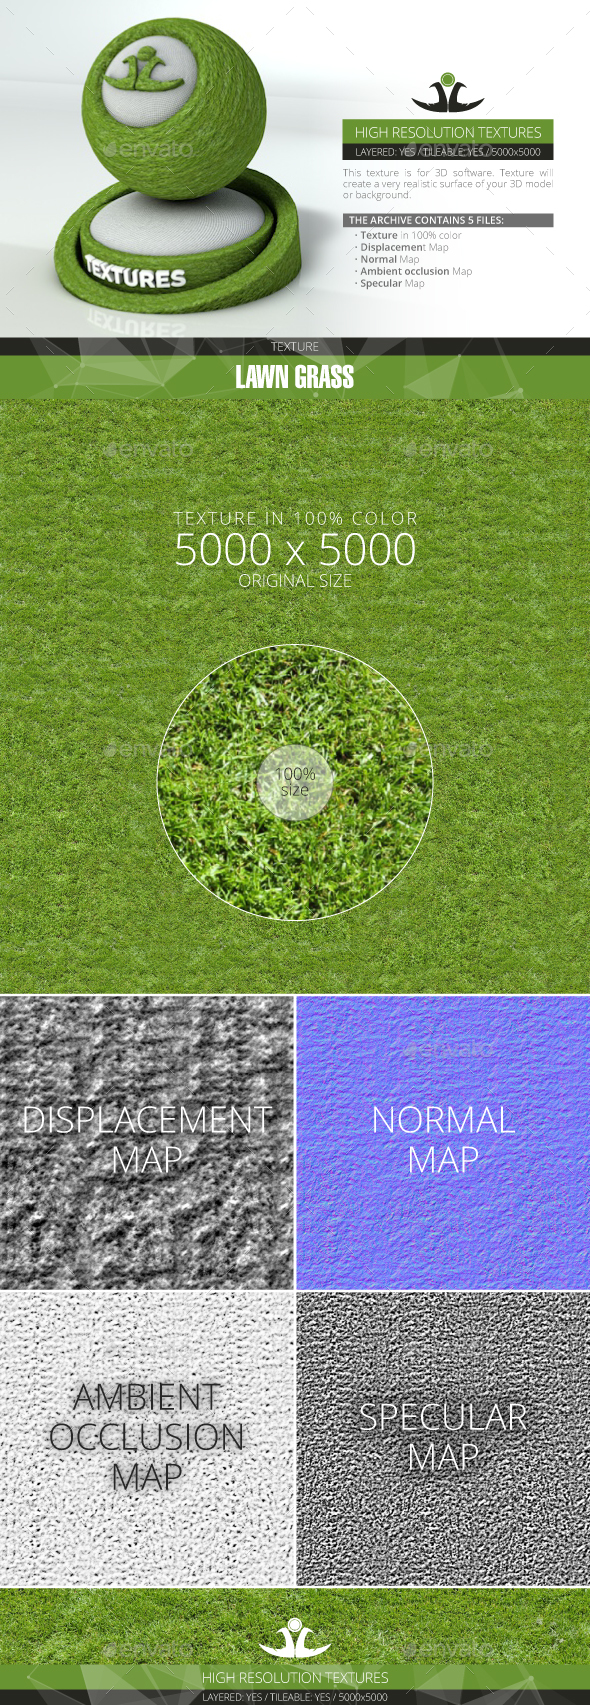 Lawn Grass 11 - 3DOcean Item for Sale